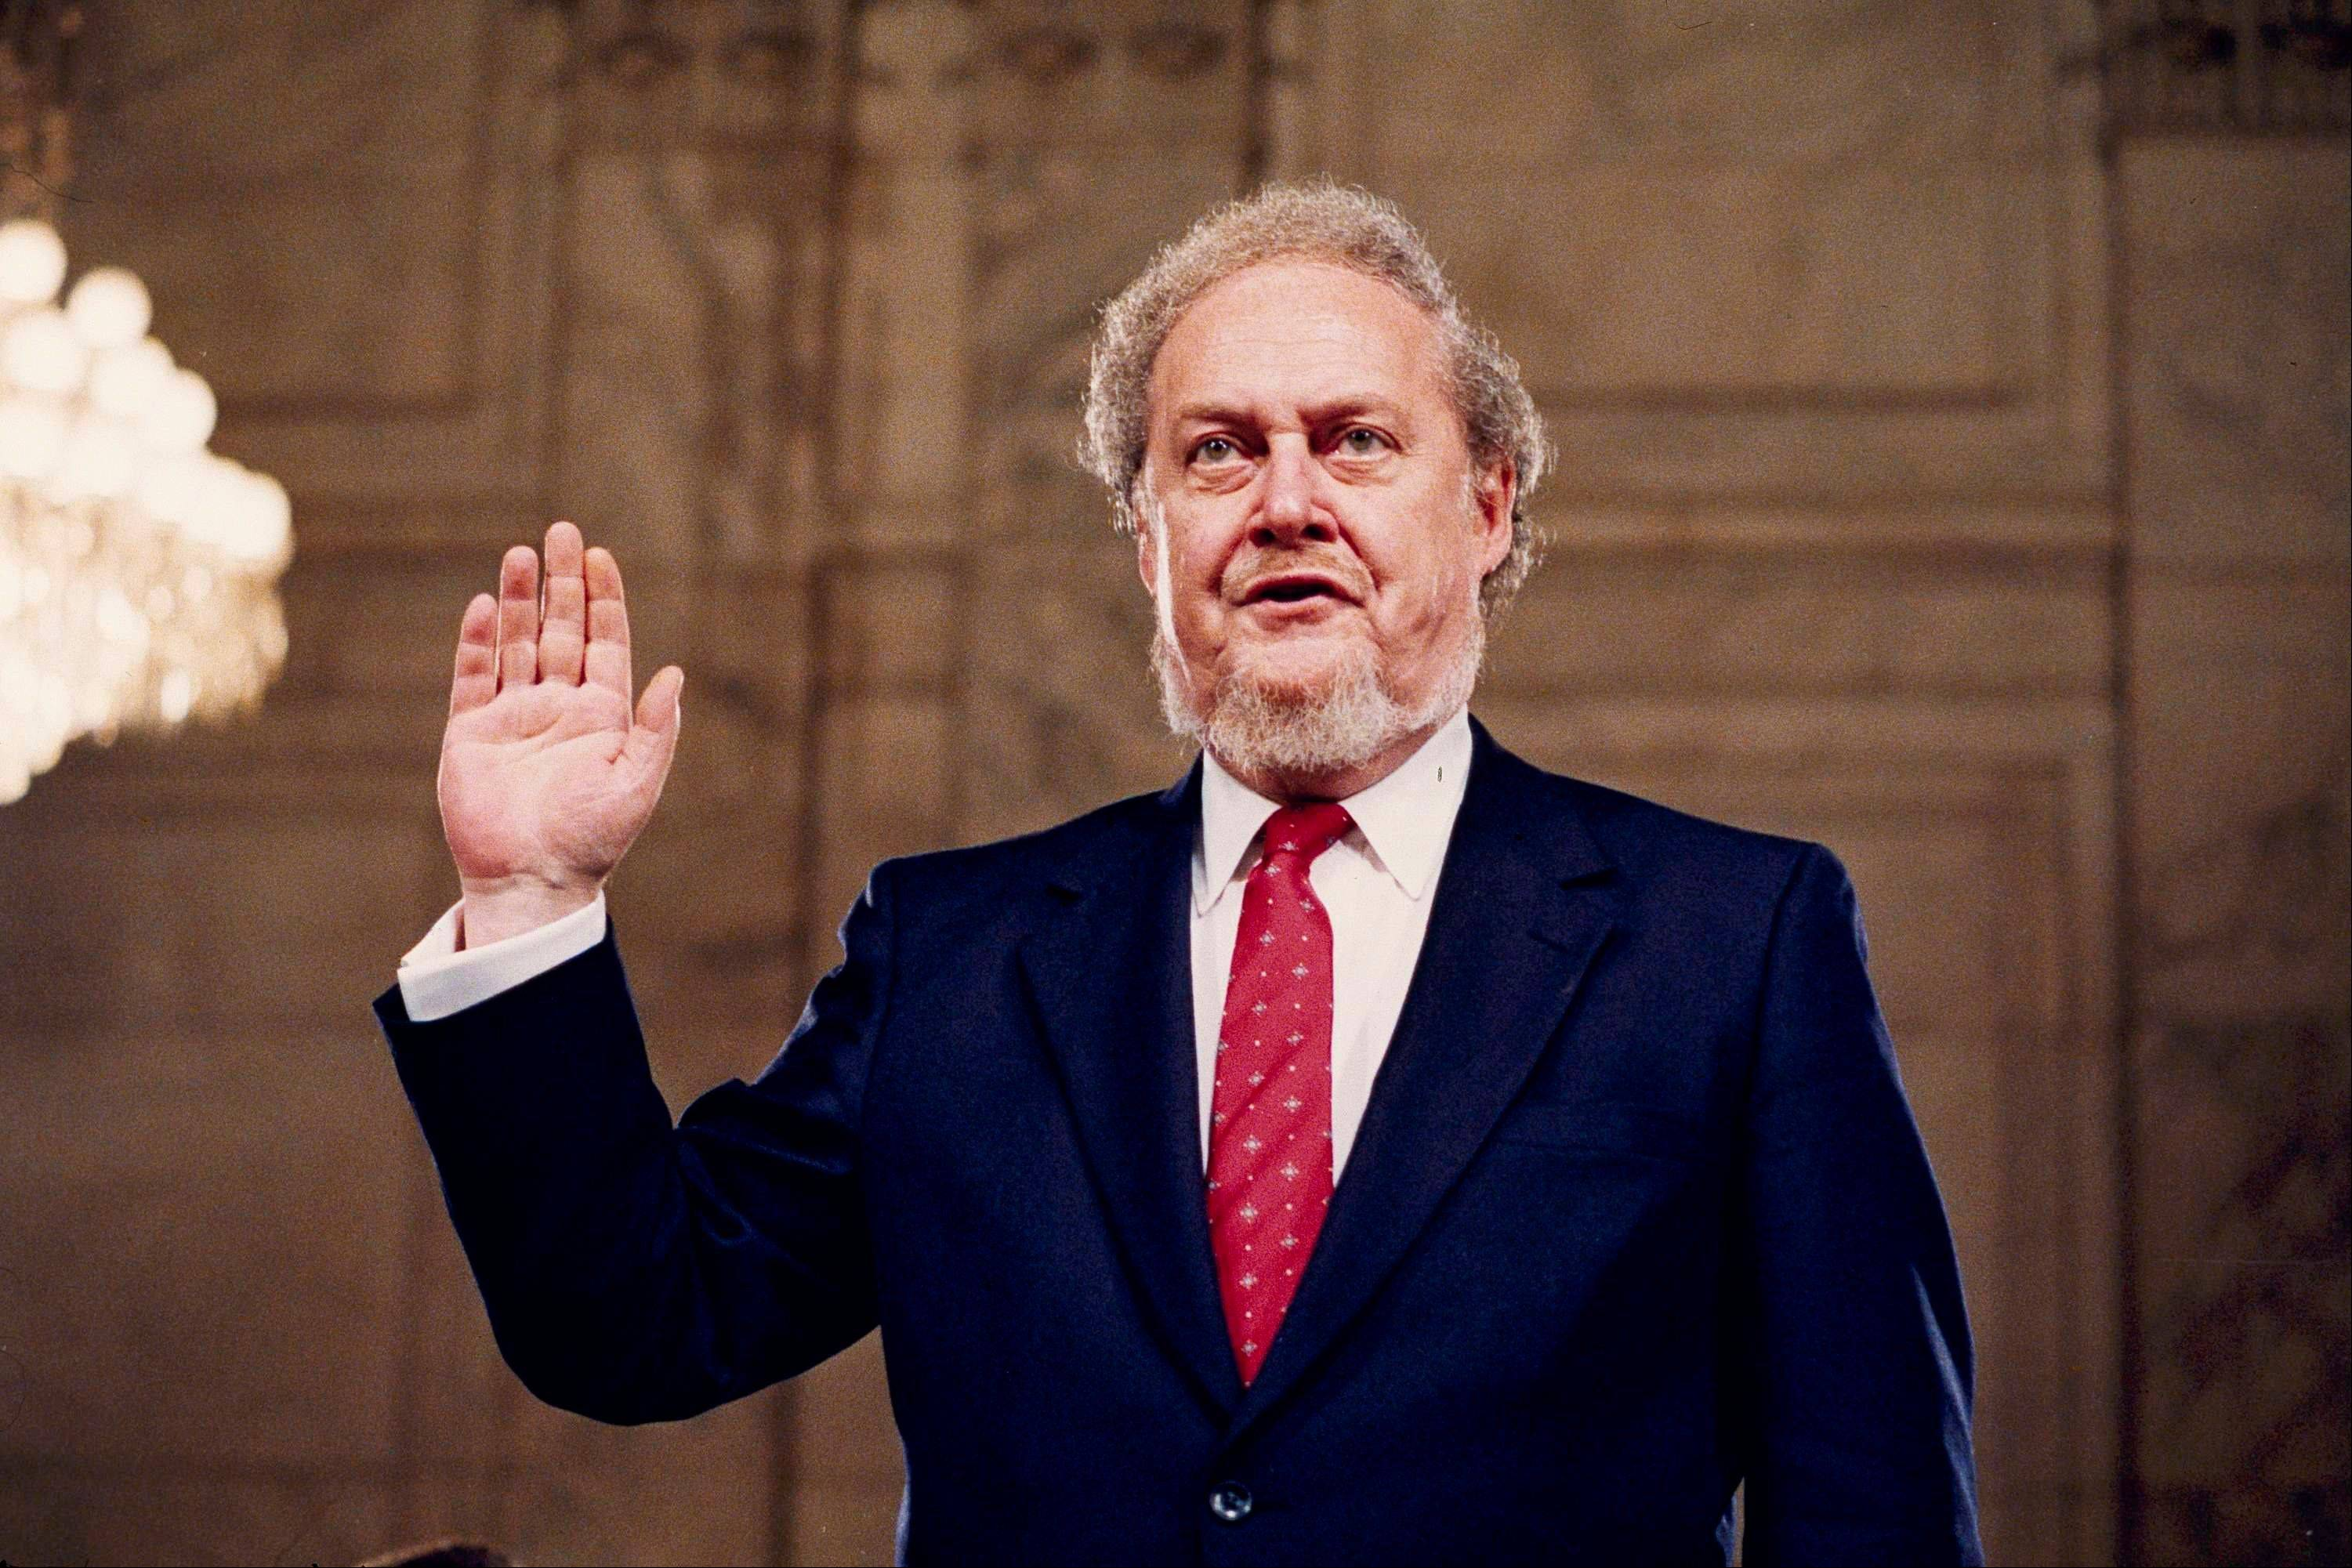 Judge Robert Bork, nominated by President Reagan to be an associate justice of the Supreme Court, is sworn before the Senate Judiciary Committee on Capitol Hill at his confirmation hearing in 1987. Robert Bork, whose failed Supreme Court nomination made history, has died.